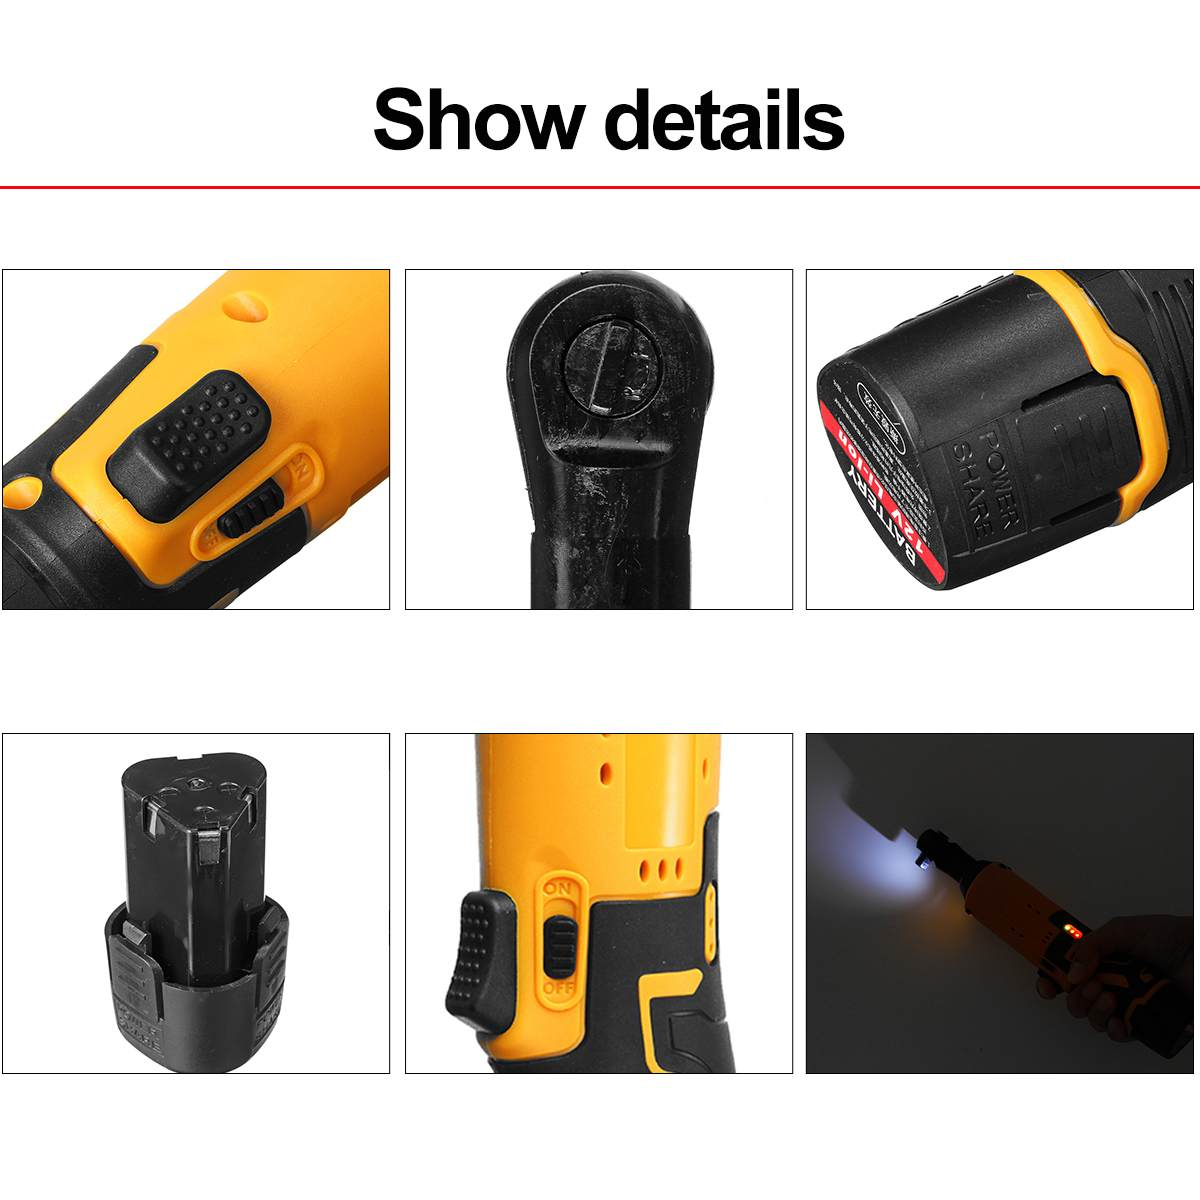 Rechargeable M Wrench 100N 12V Max Power Cordless 8inch Wrench Right Angle Ratchet 2PCS 3 With Torque 8000mAh Battery